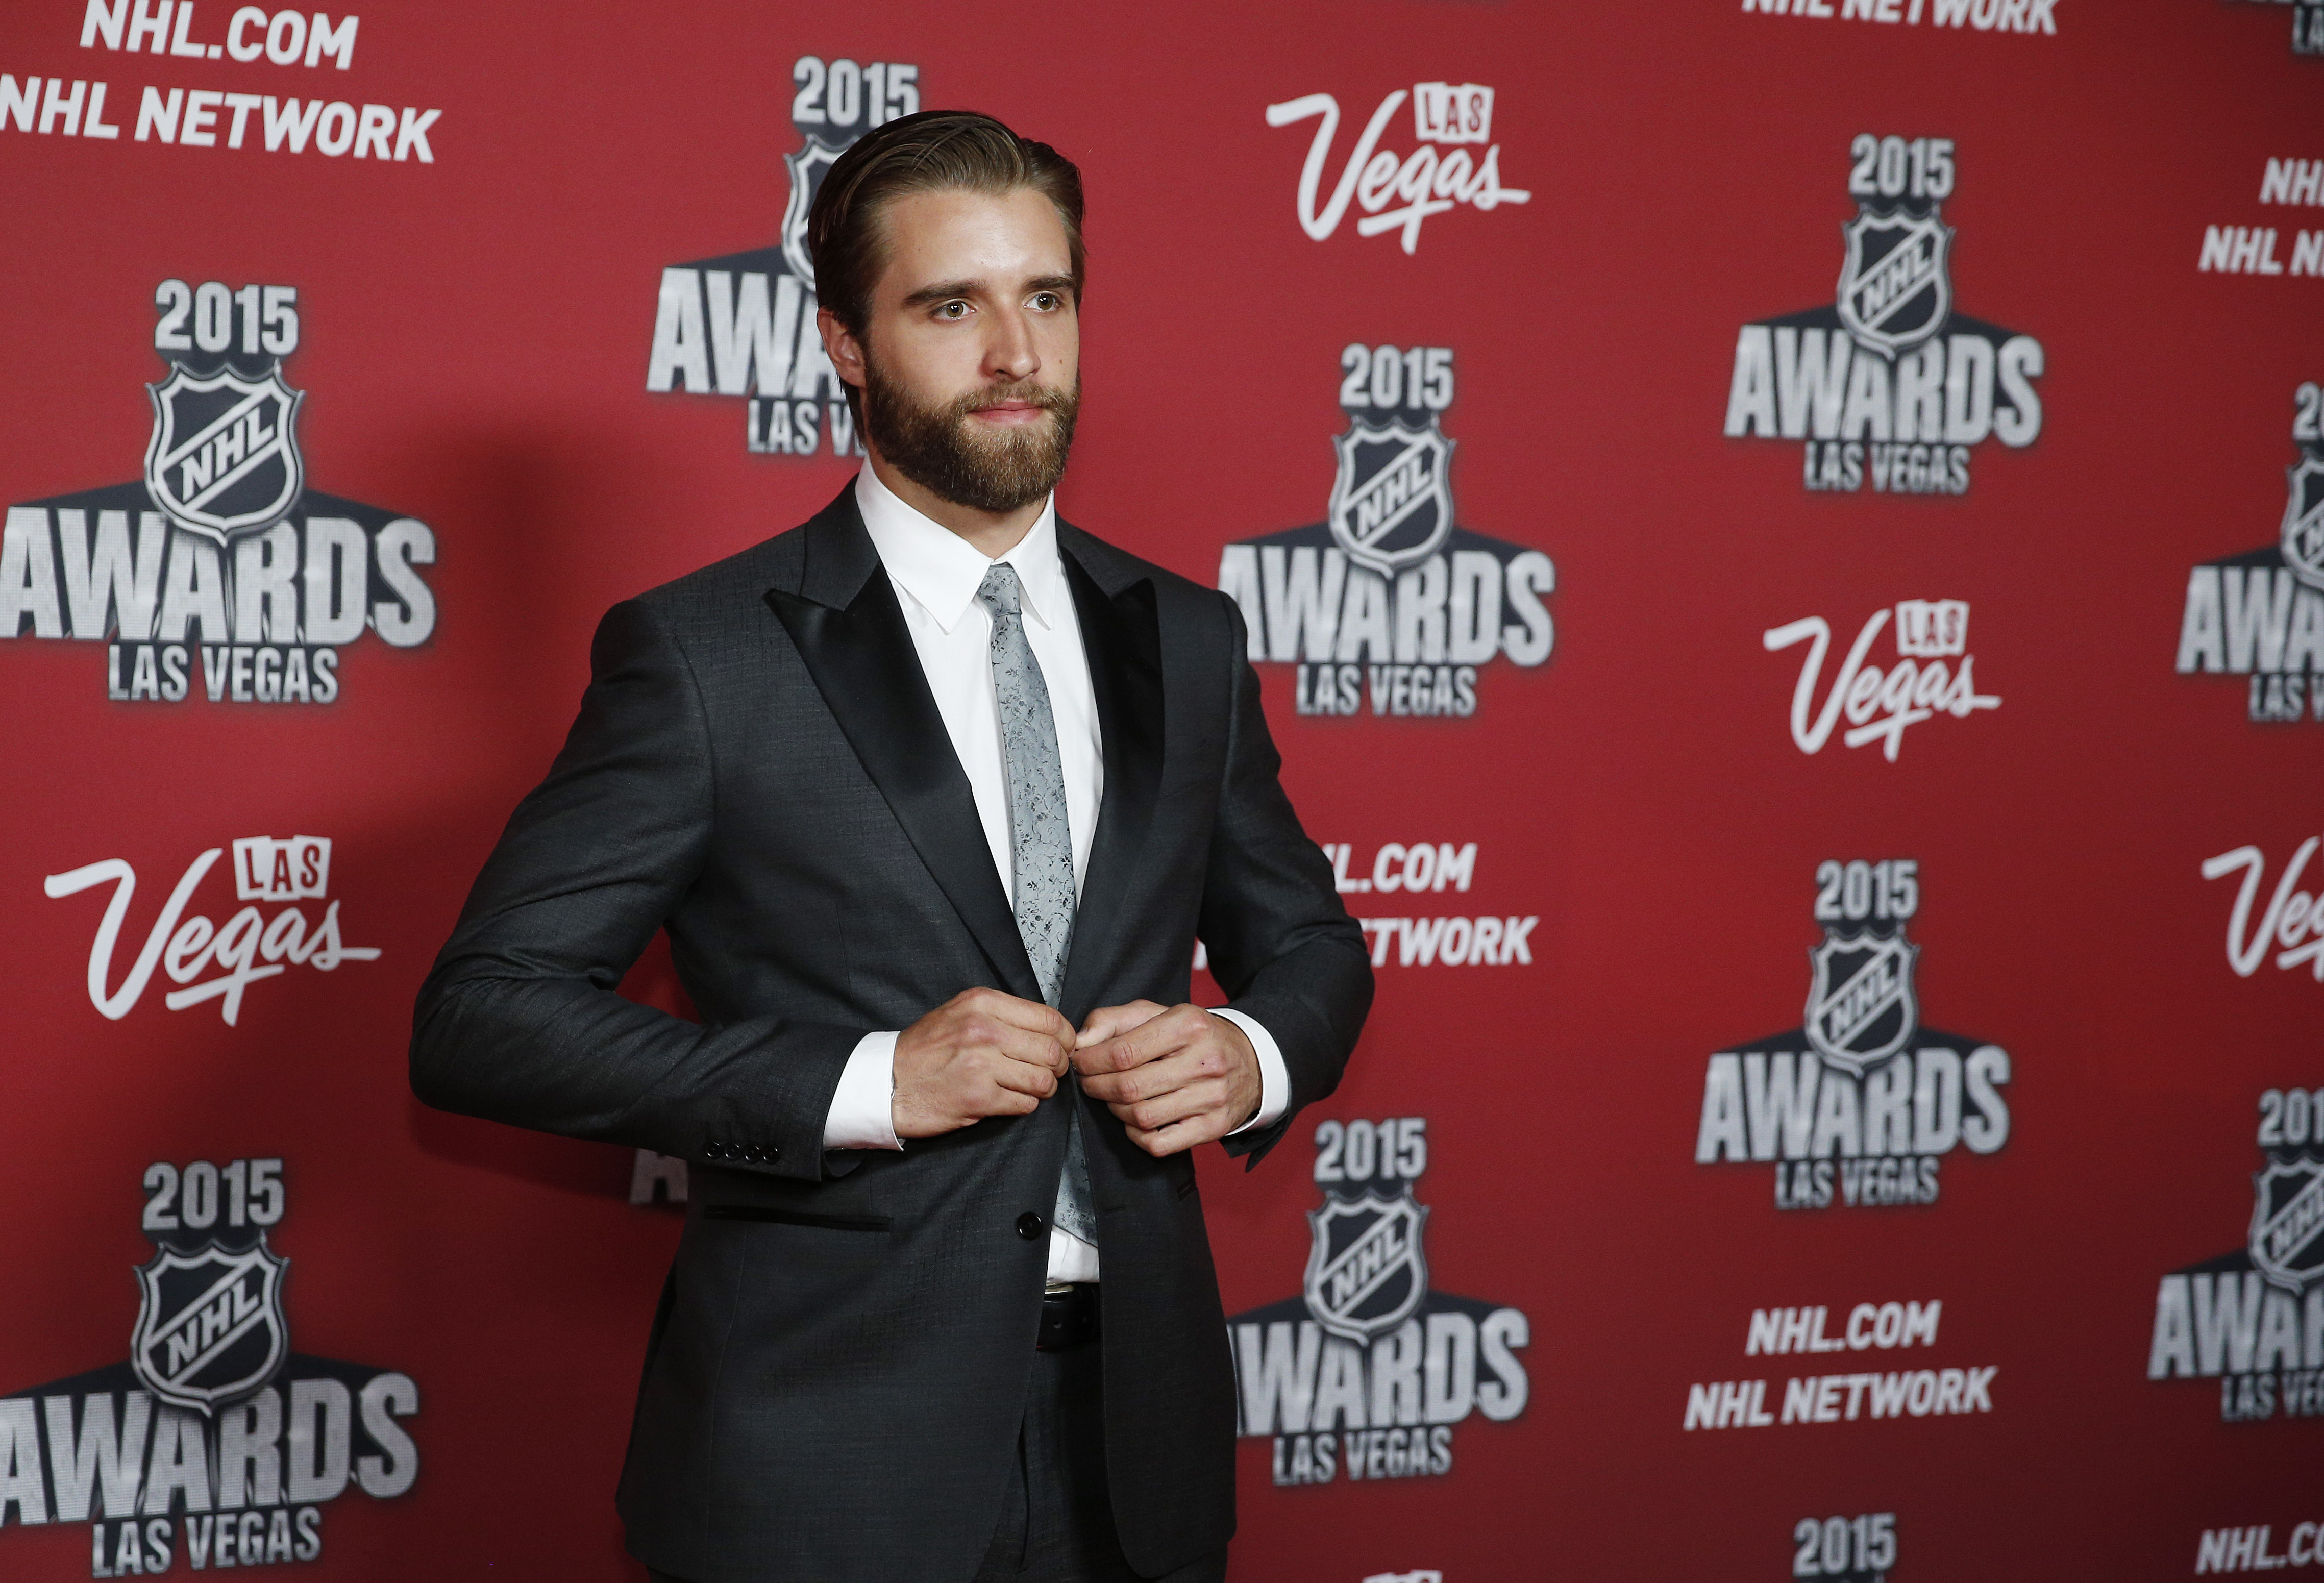 Florida Panthers' Aaron Ekblad poses on the red carpet before the NHL Awards show Wednesday, June 24, 2015, in Las Vegas. (AP Photo/John Locher)